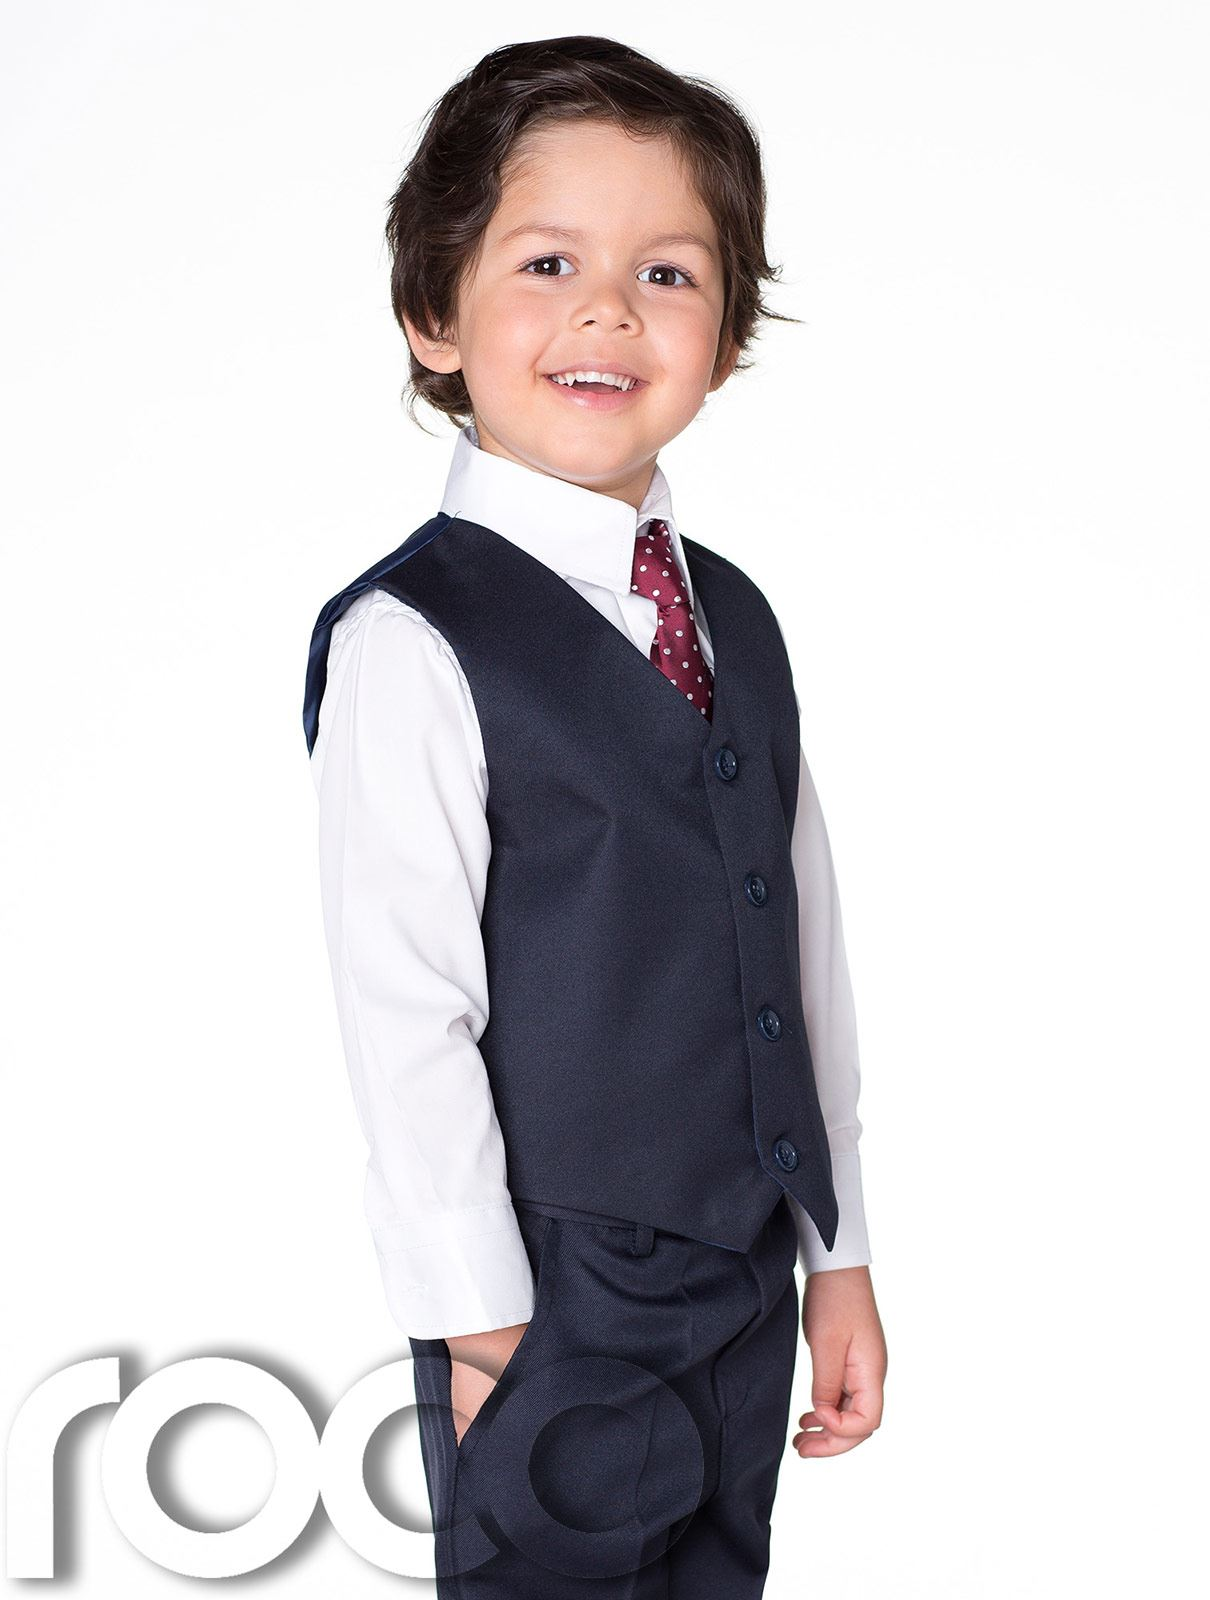 Page-Boy-Suits-Boys-Waistcoat-Suit-Boys-suits-Navy-Suit-Grey-Suit-Blue-Suit thumbnail 12